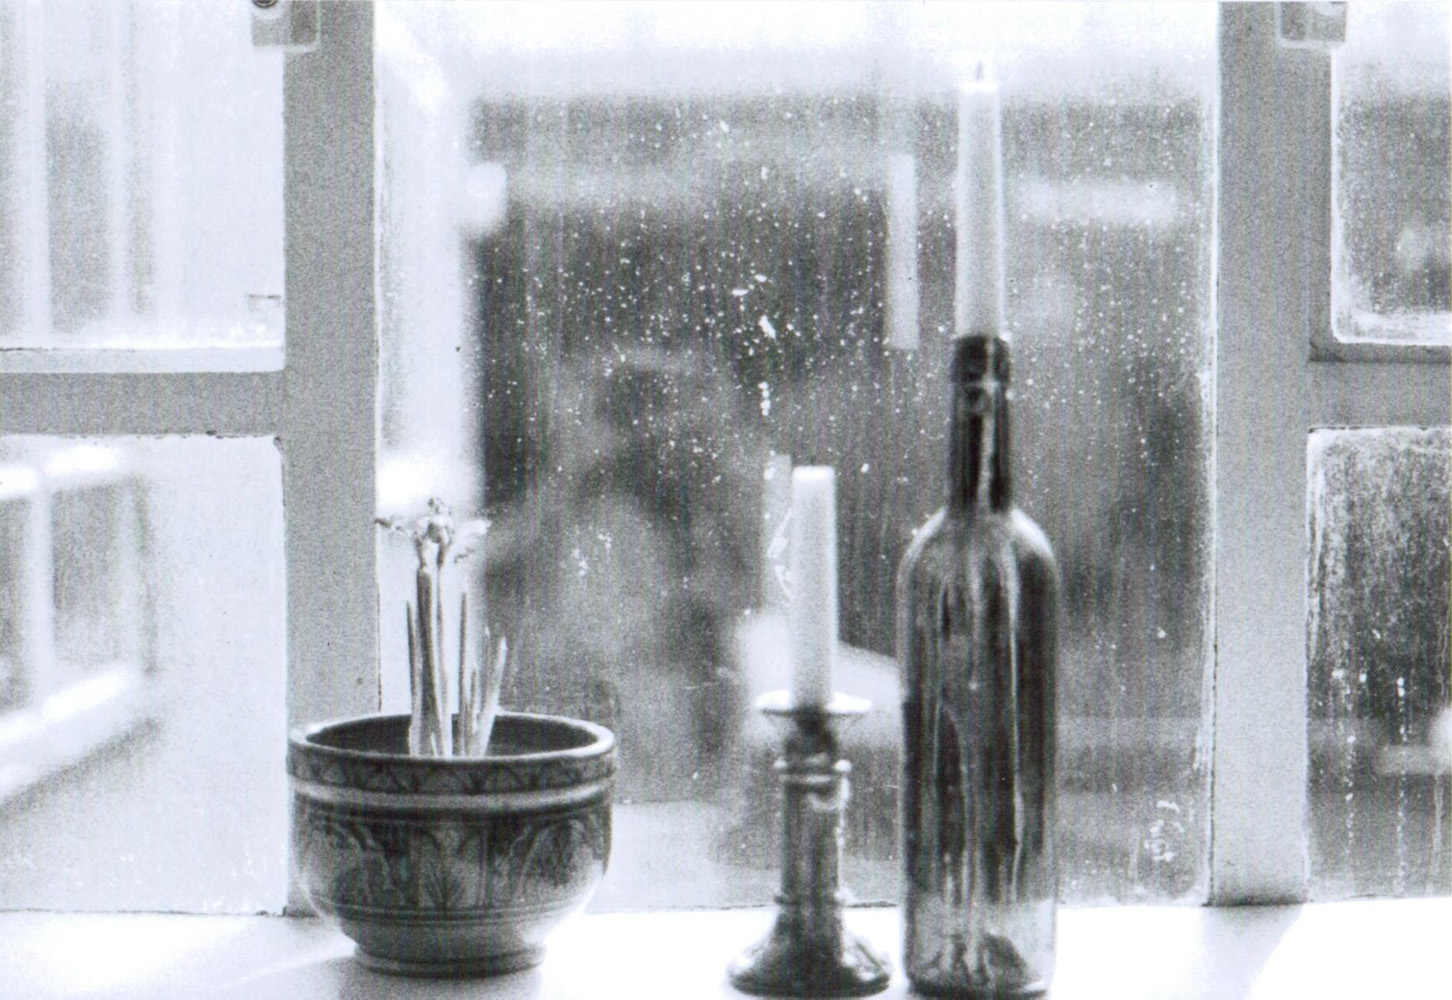 35mm candles in the window